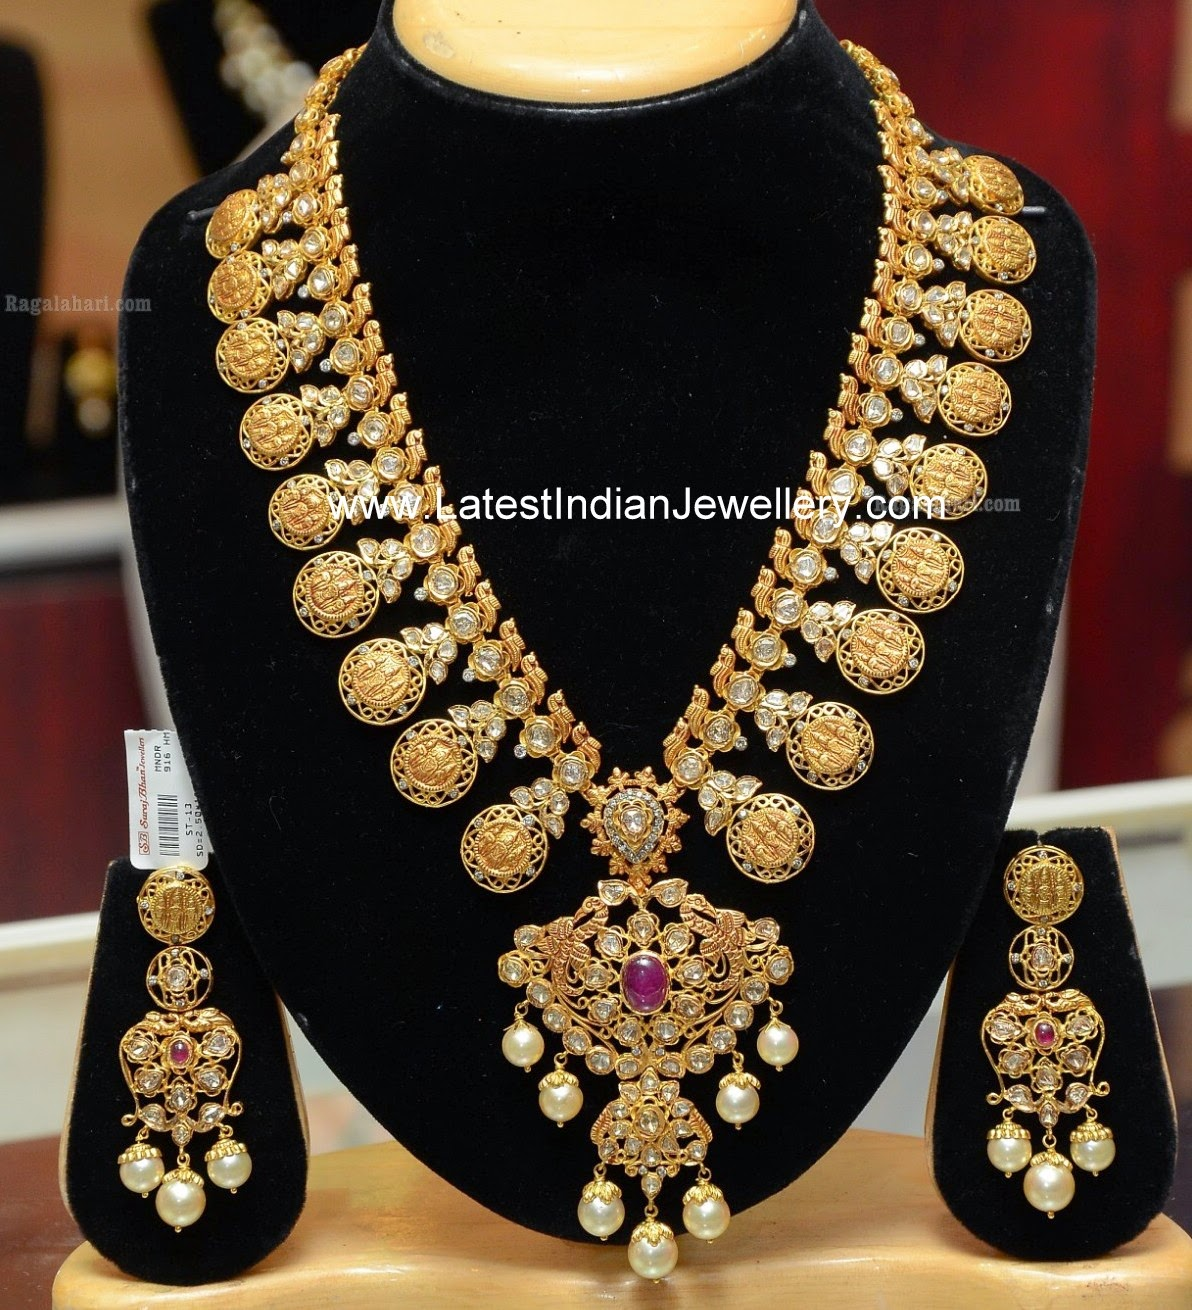 Latest Indian Jewellery Designs 2015: Grand Kasu Mala Set